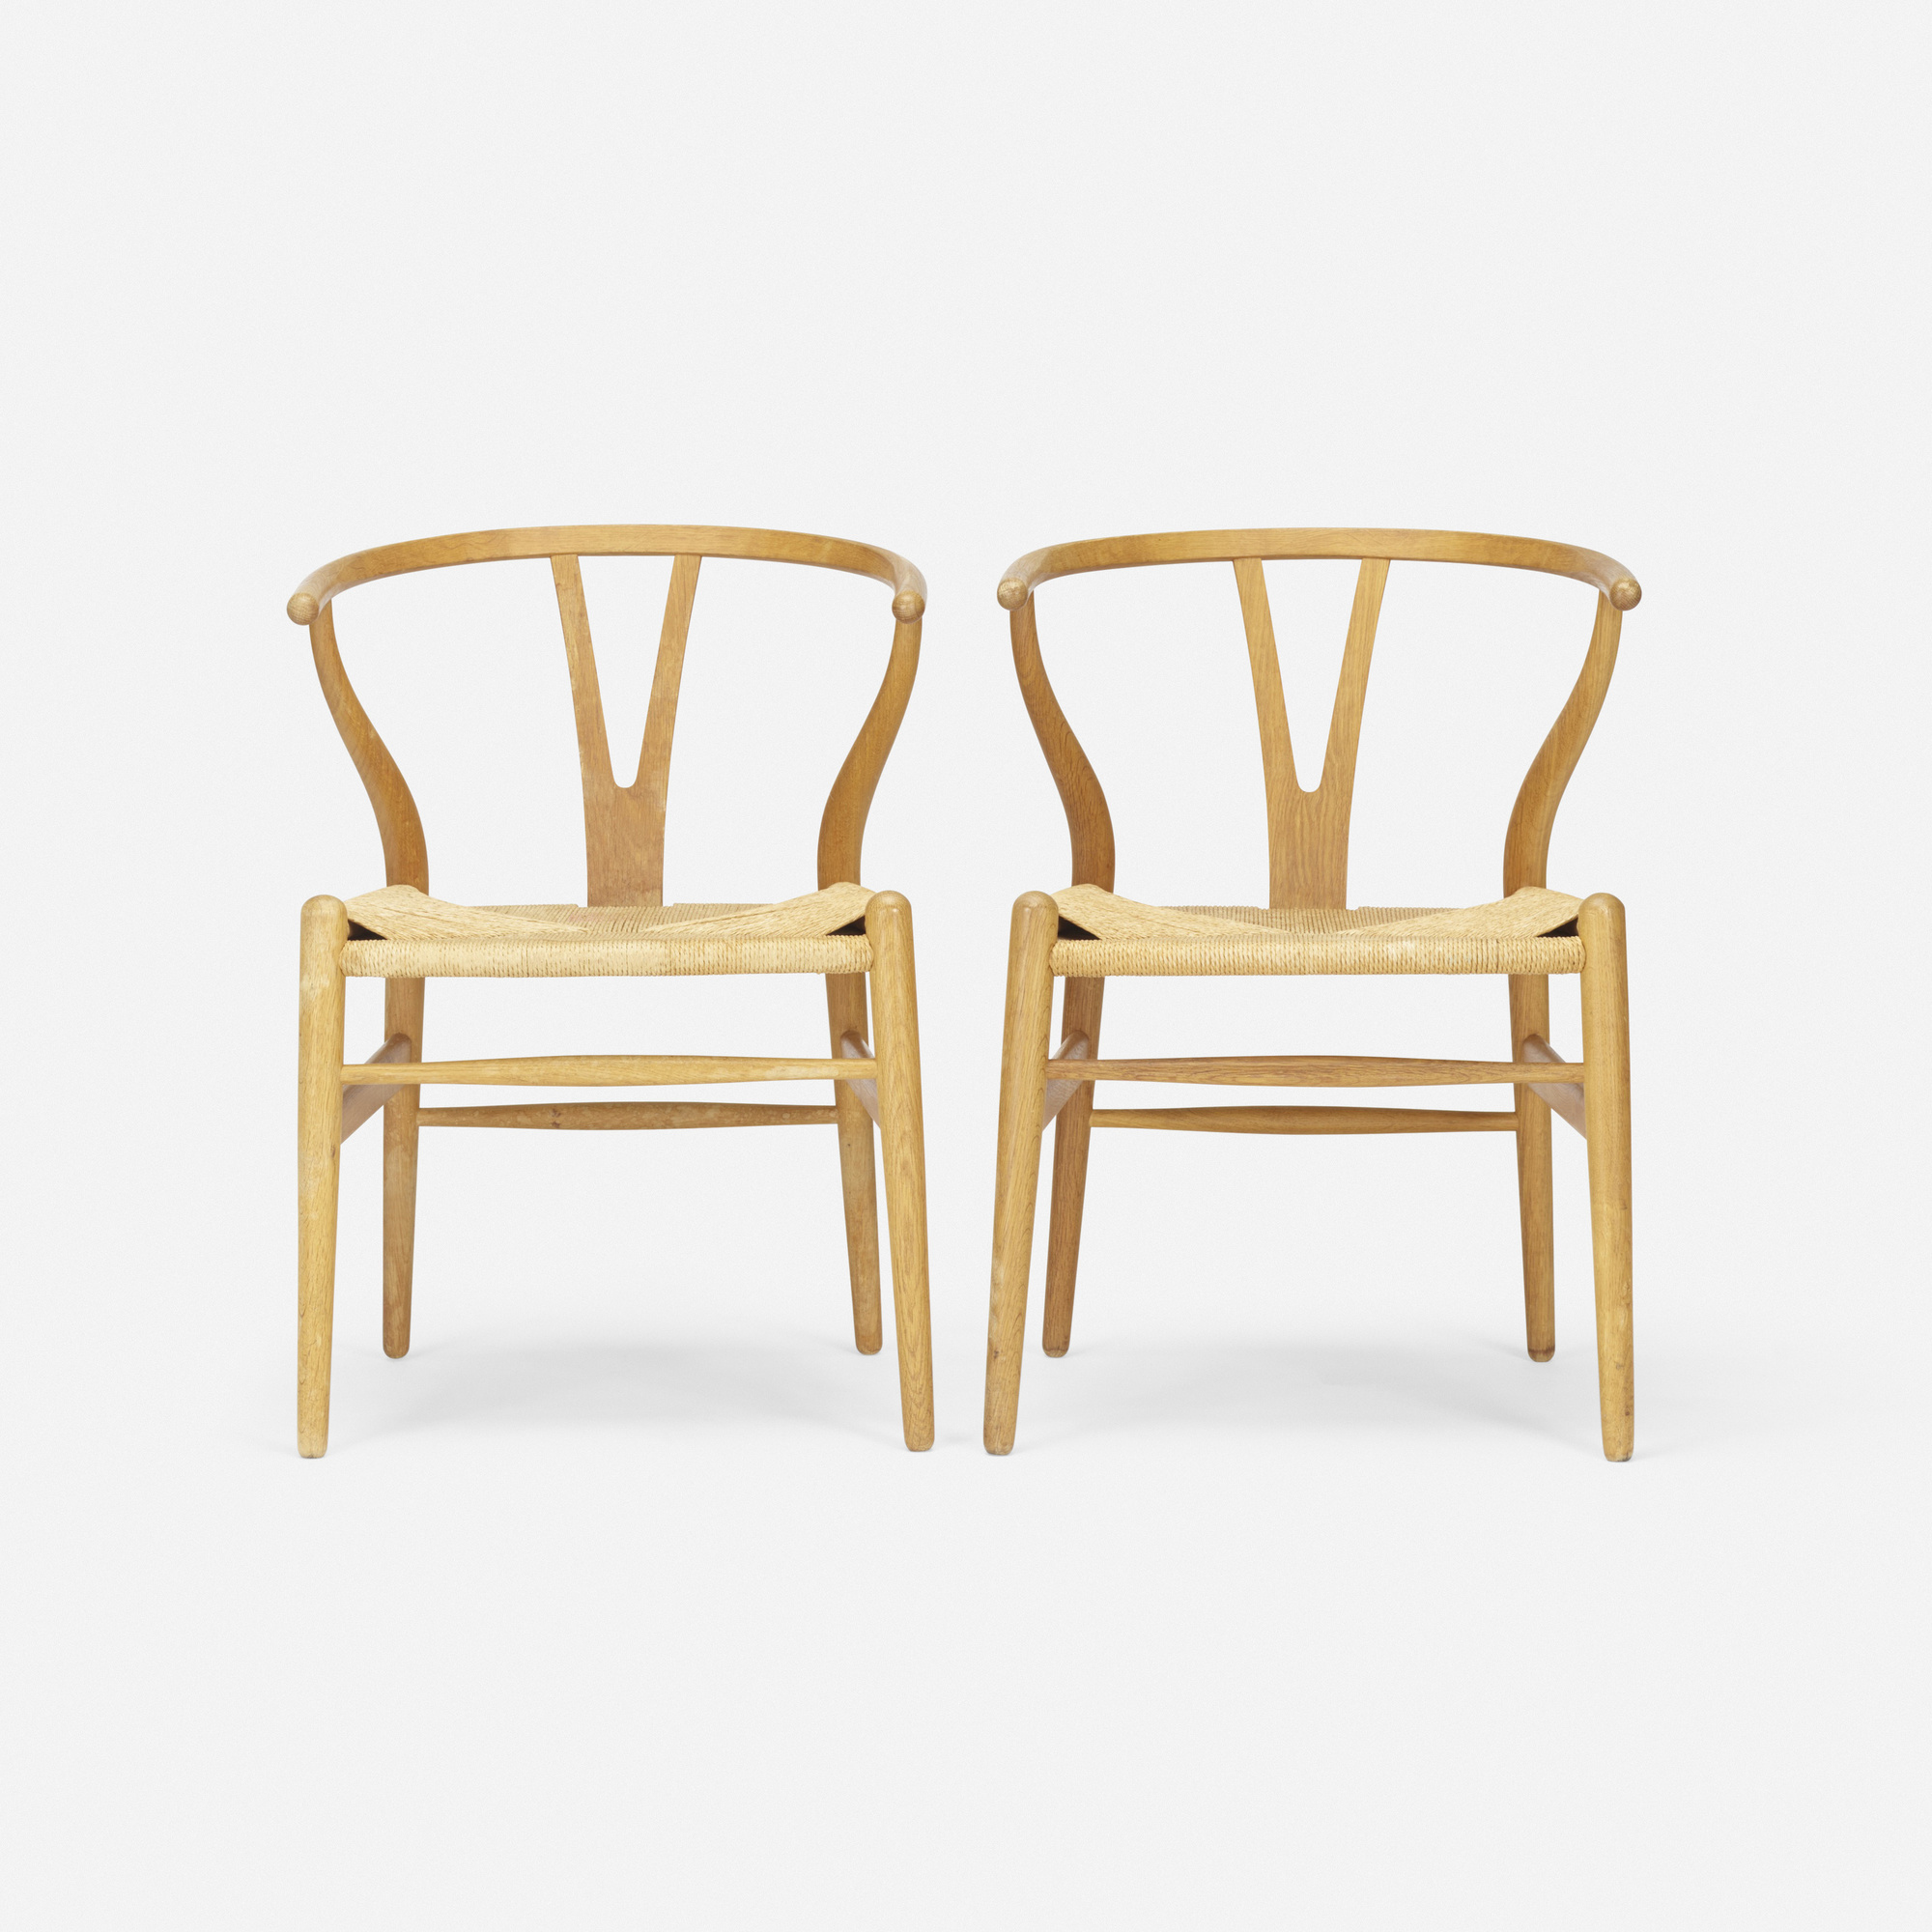 688 Hans J Wegner Wishbone chairs model CN24 pair Mass